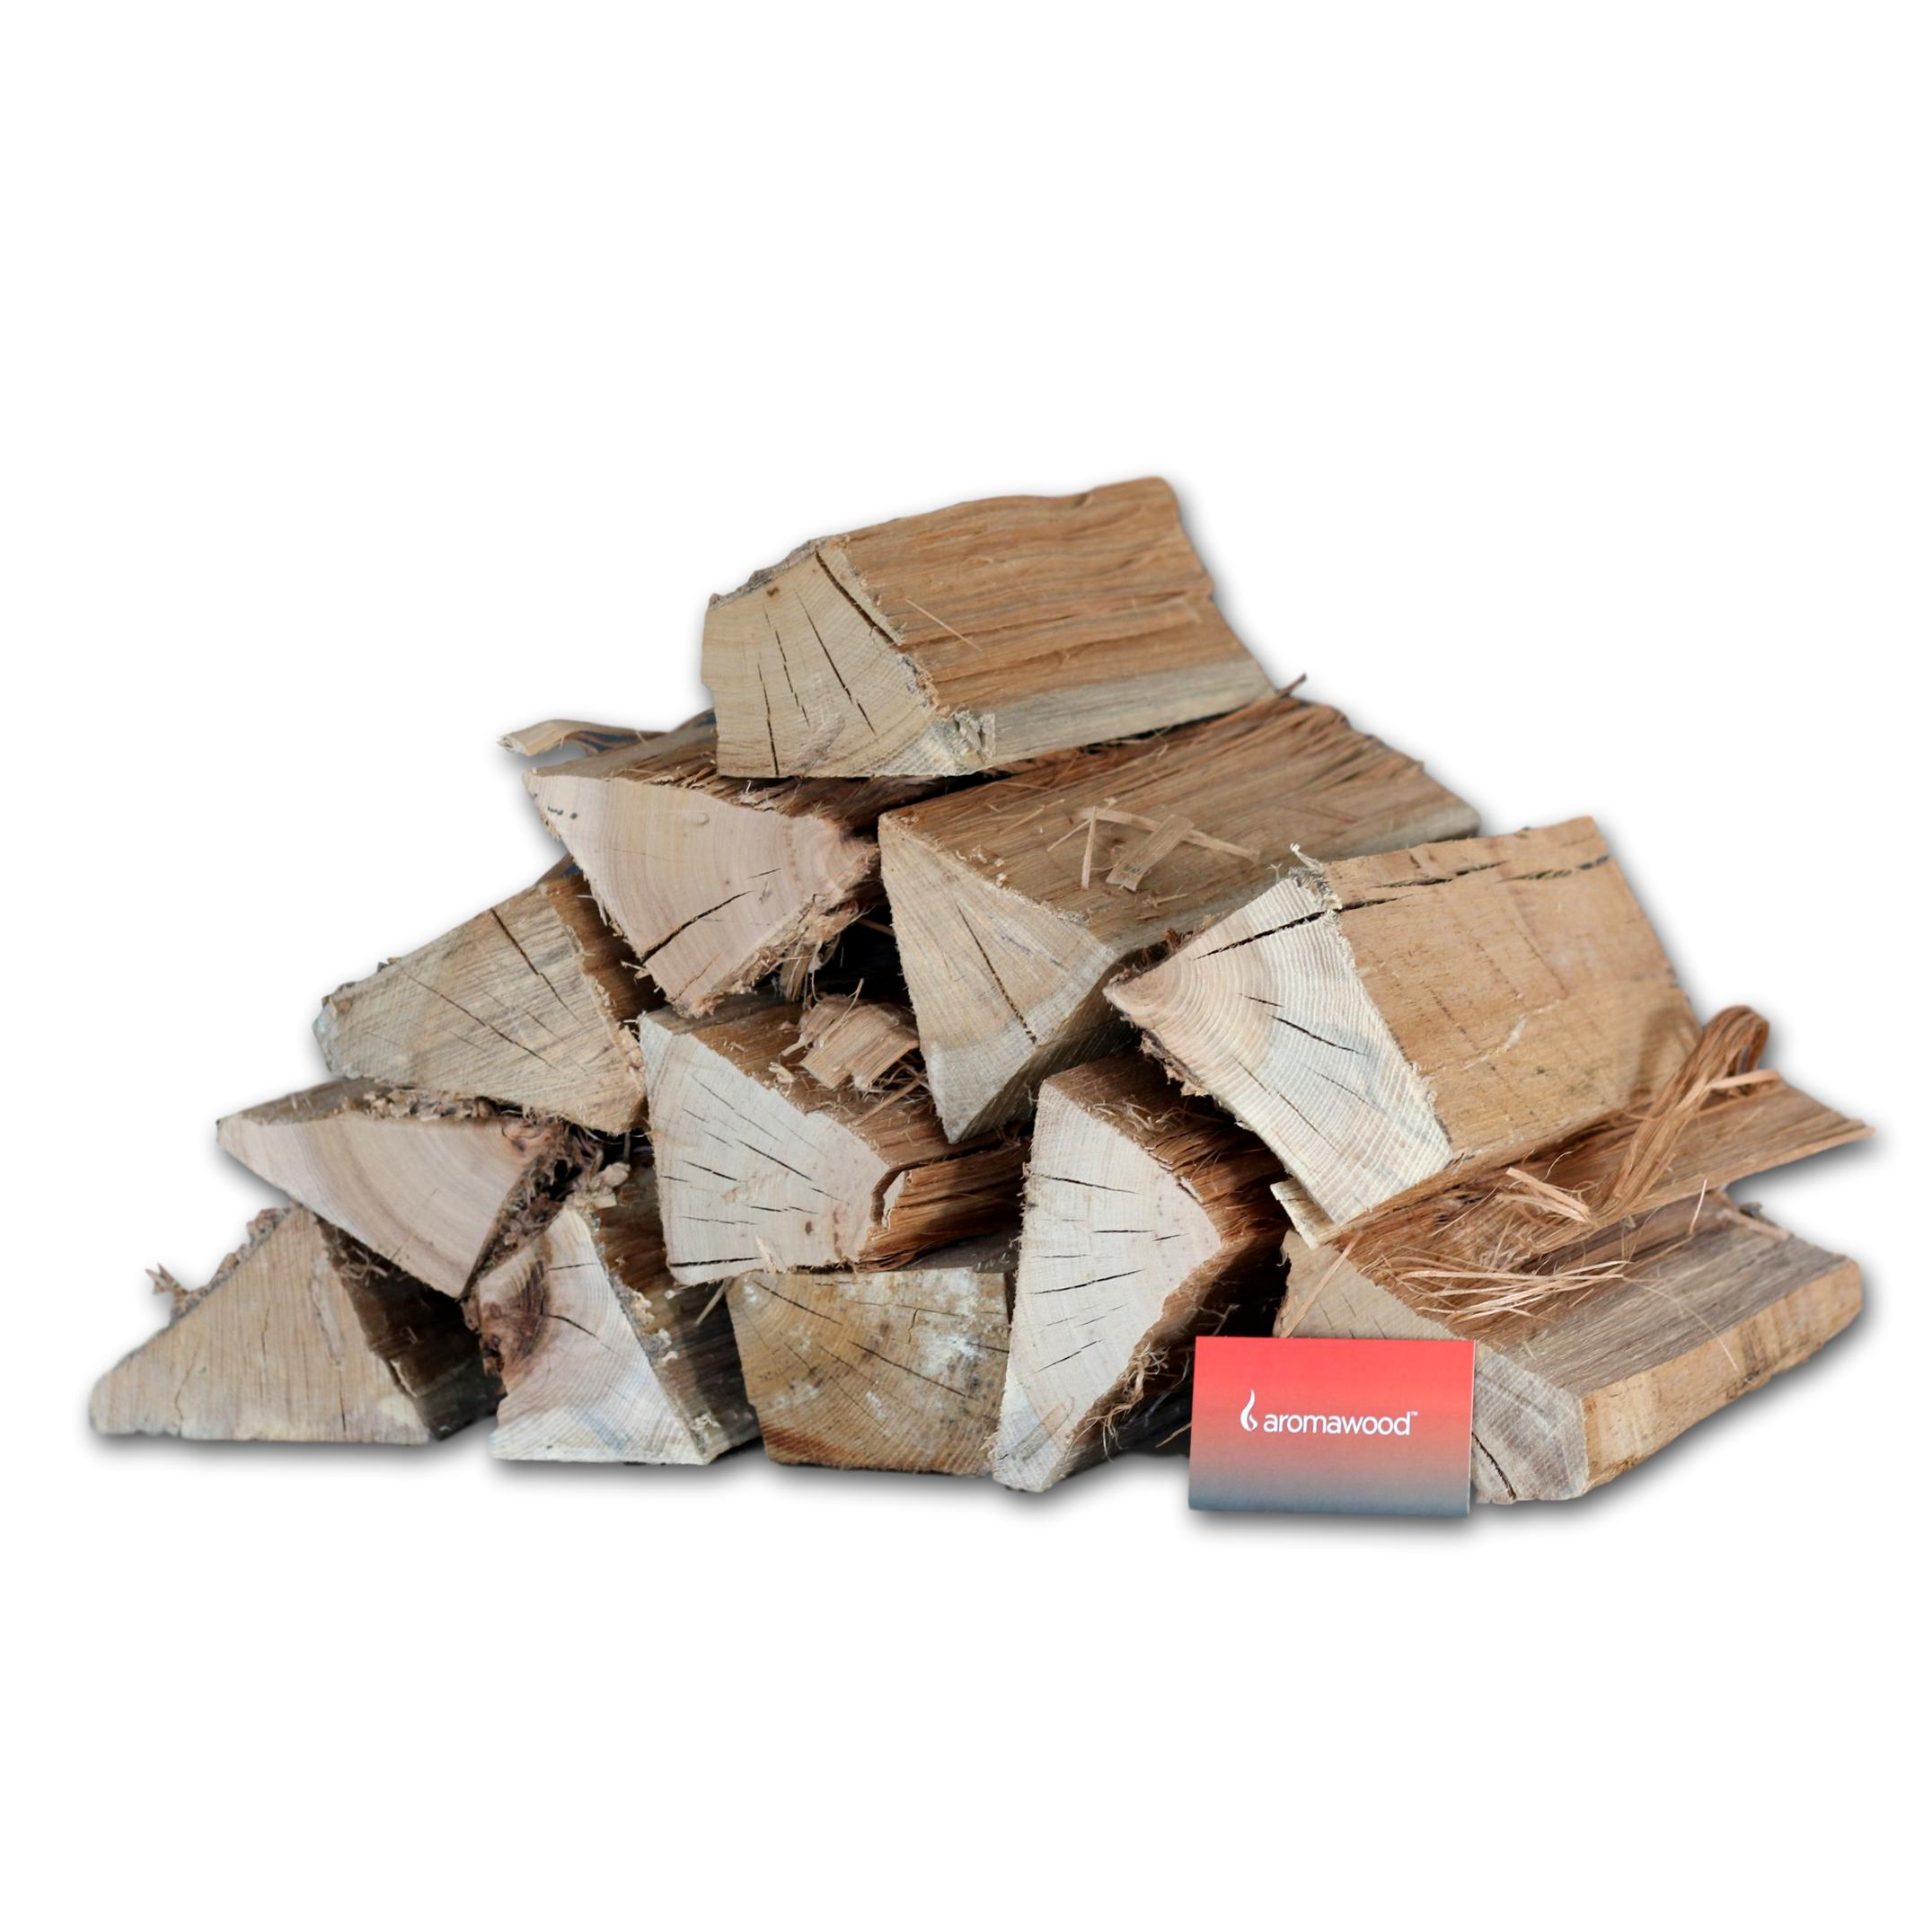 Aromawood Splits American White Oak and Hickory 15kg